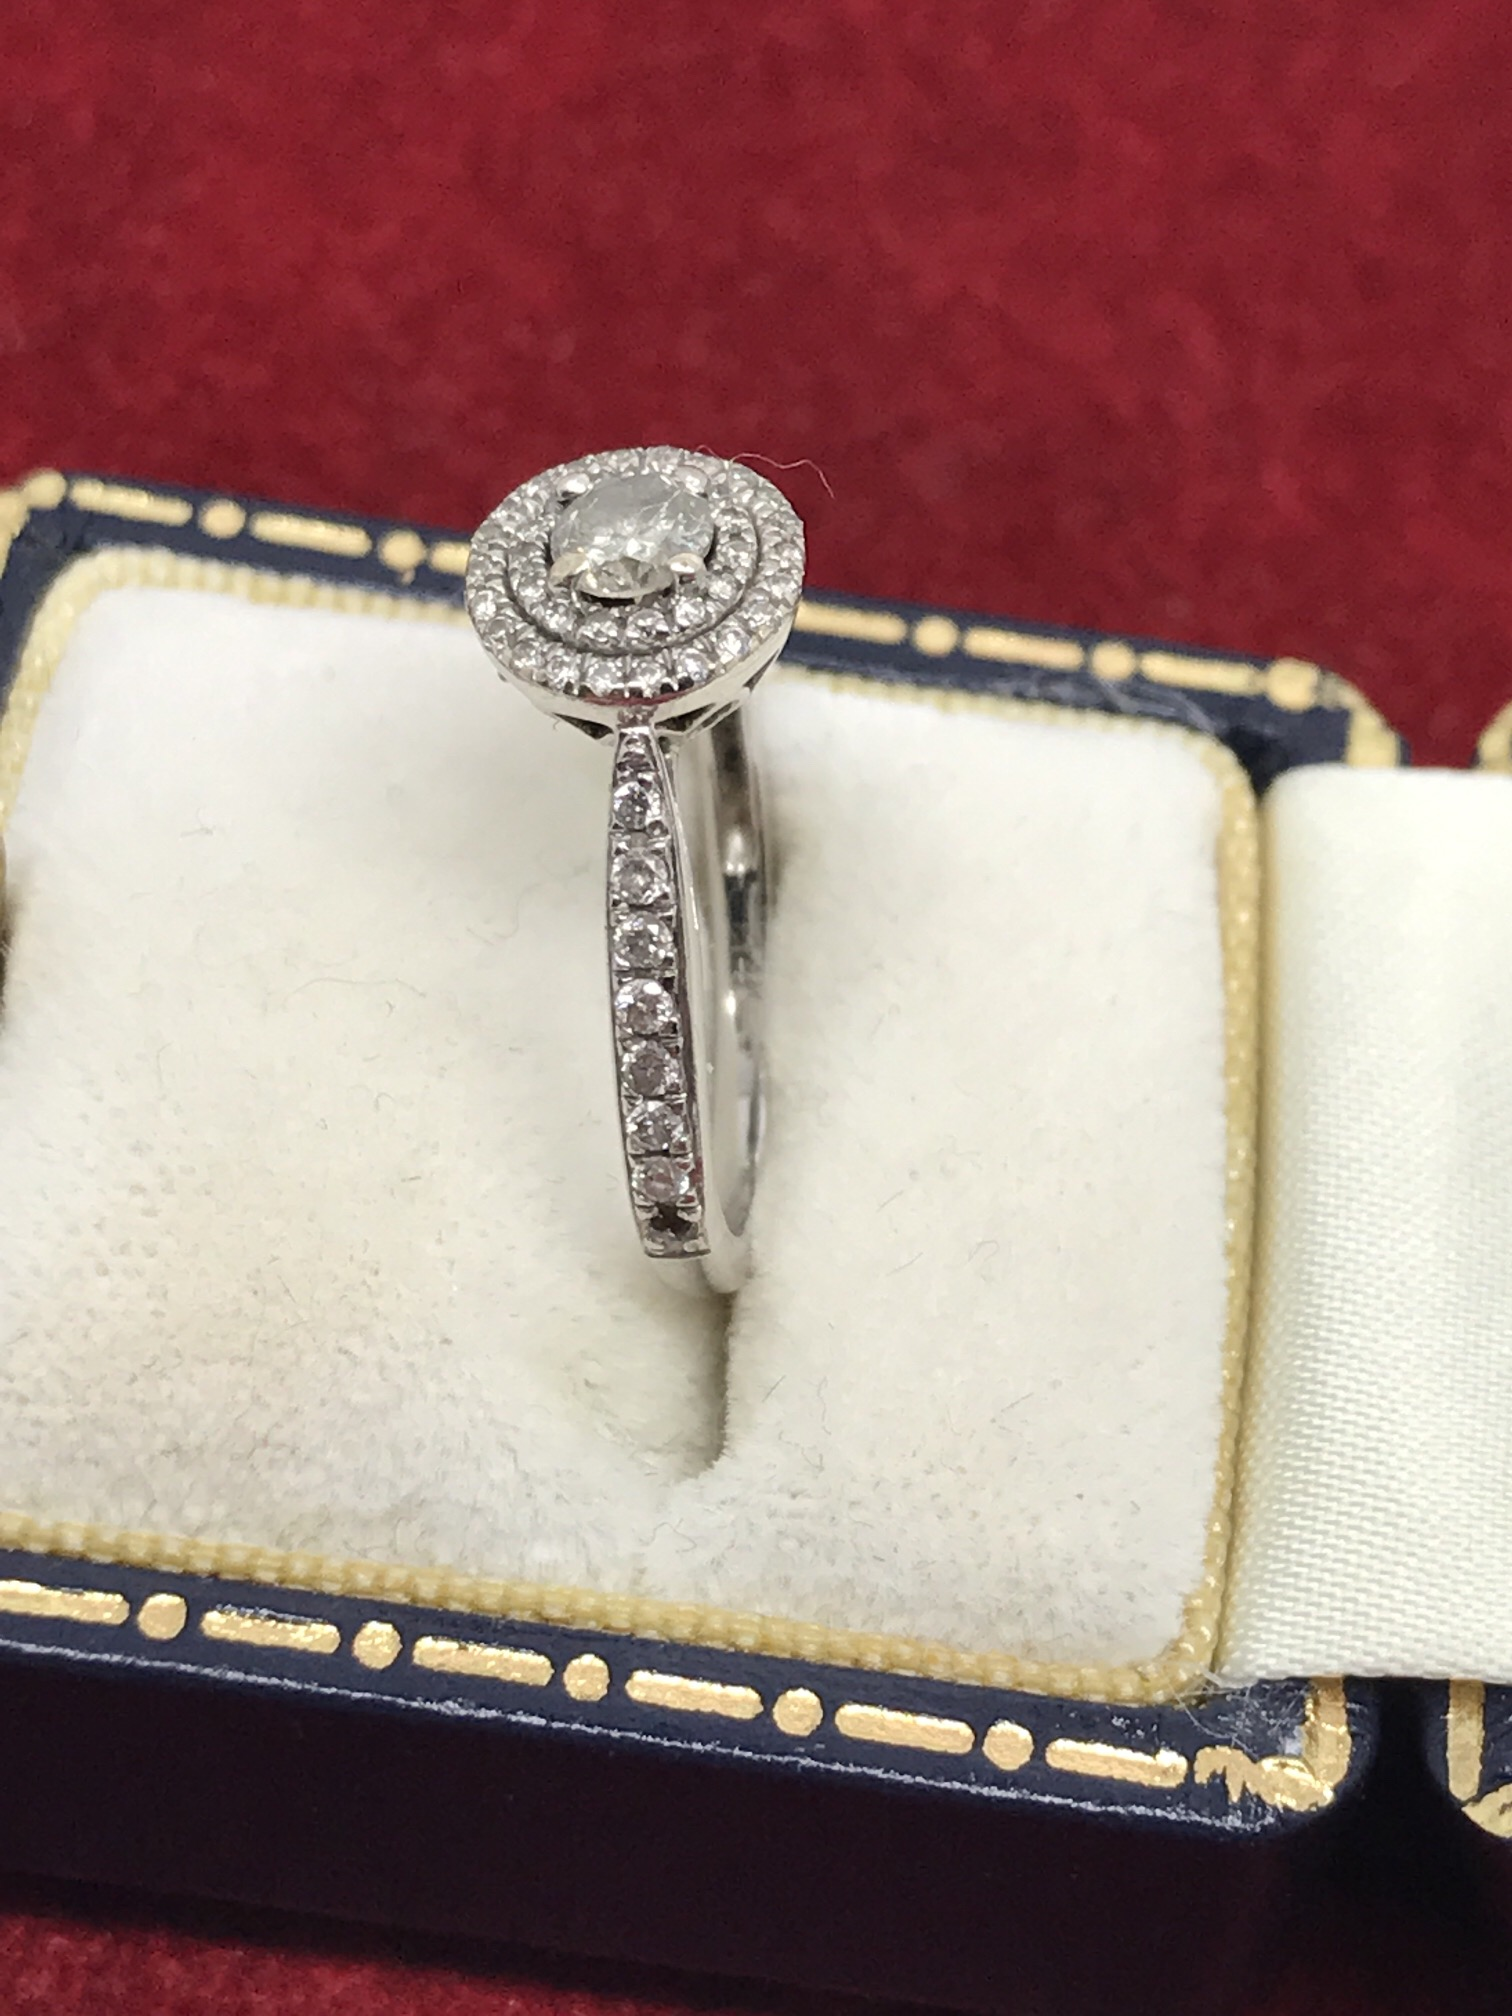 Lot 31 - 14k WHITE GOLD HALO DIAMOND RING